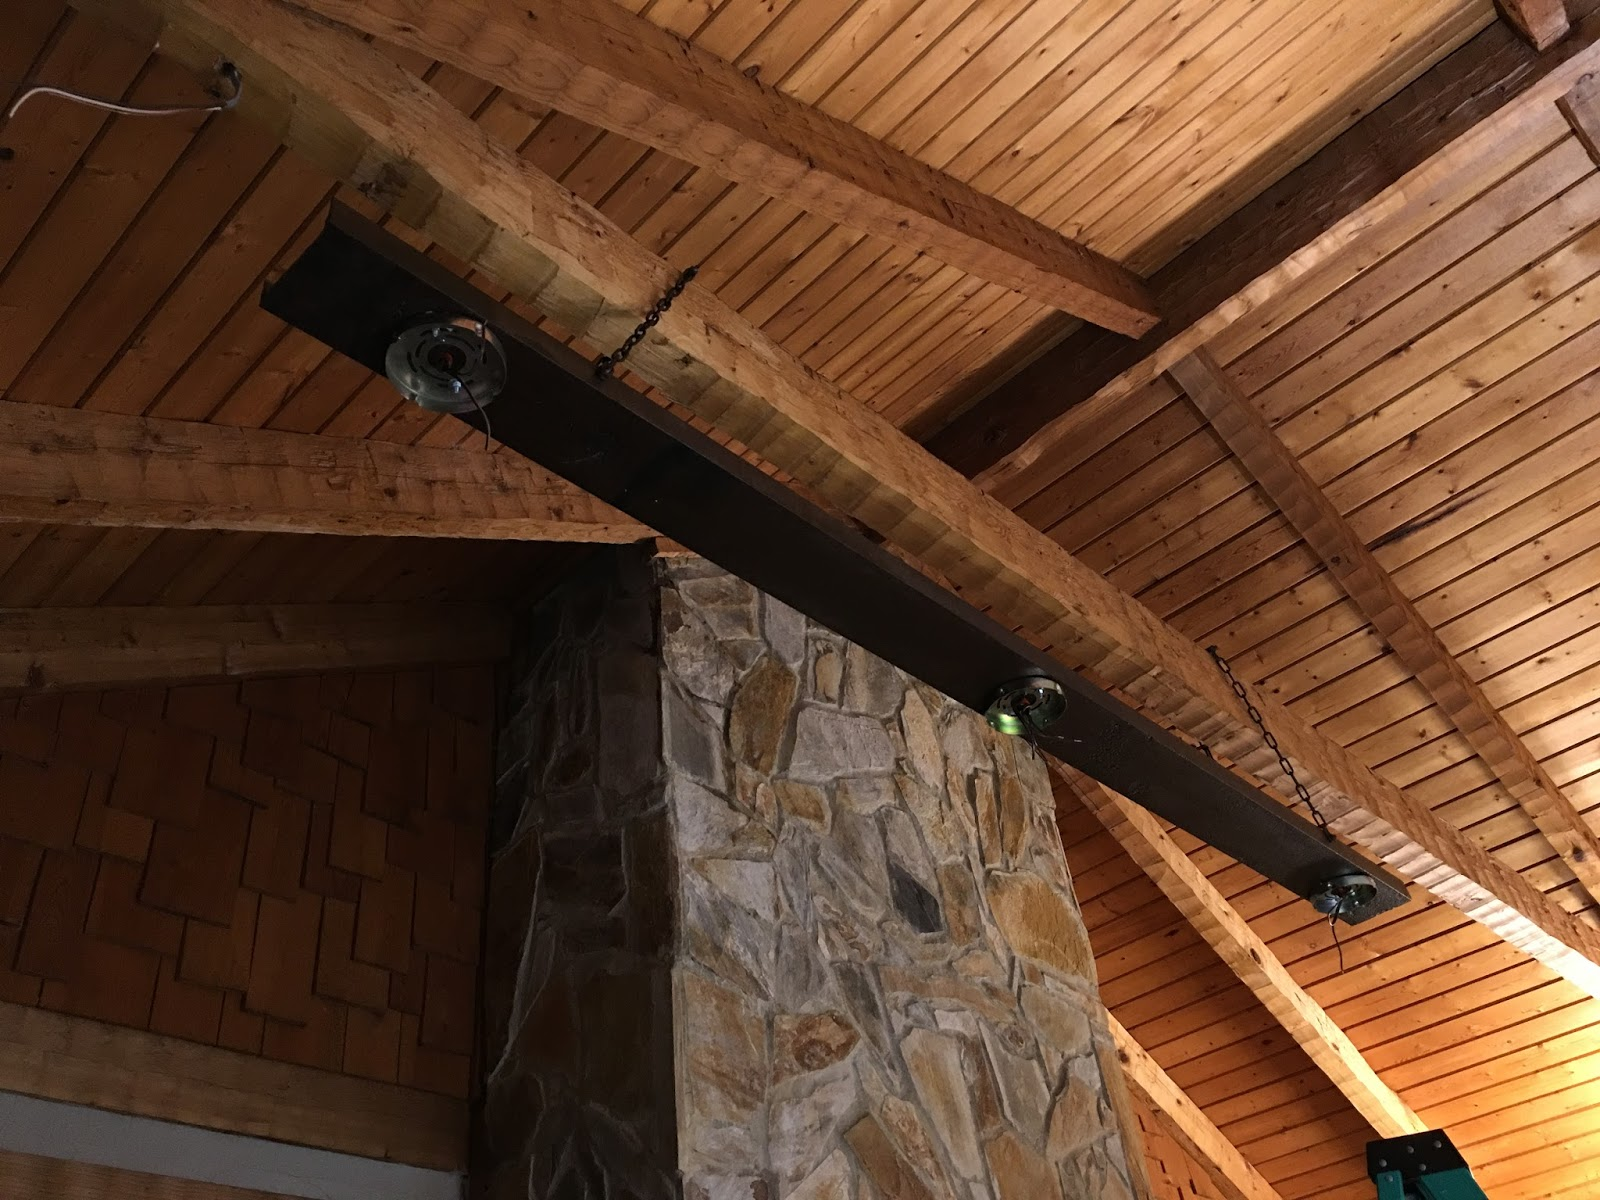 Greatest Hood Creek Log Cabin: DIY Industrial Farmhouse Light Fixture QL47